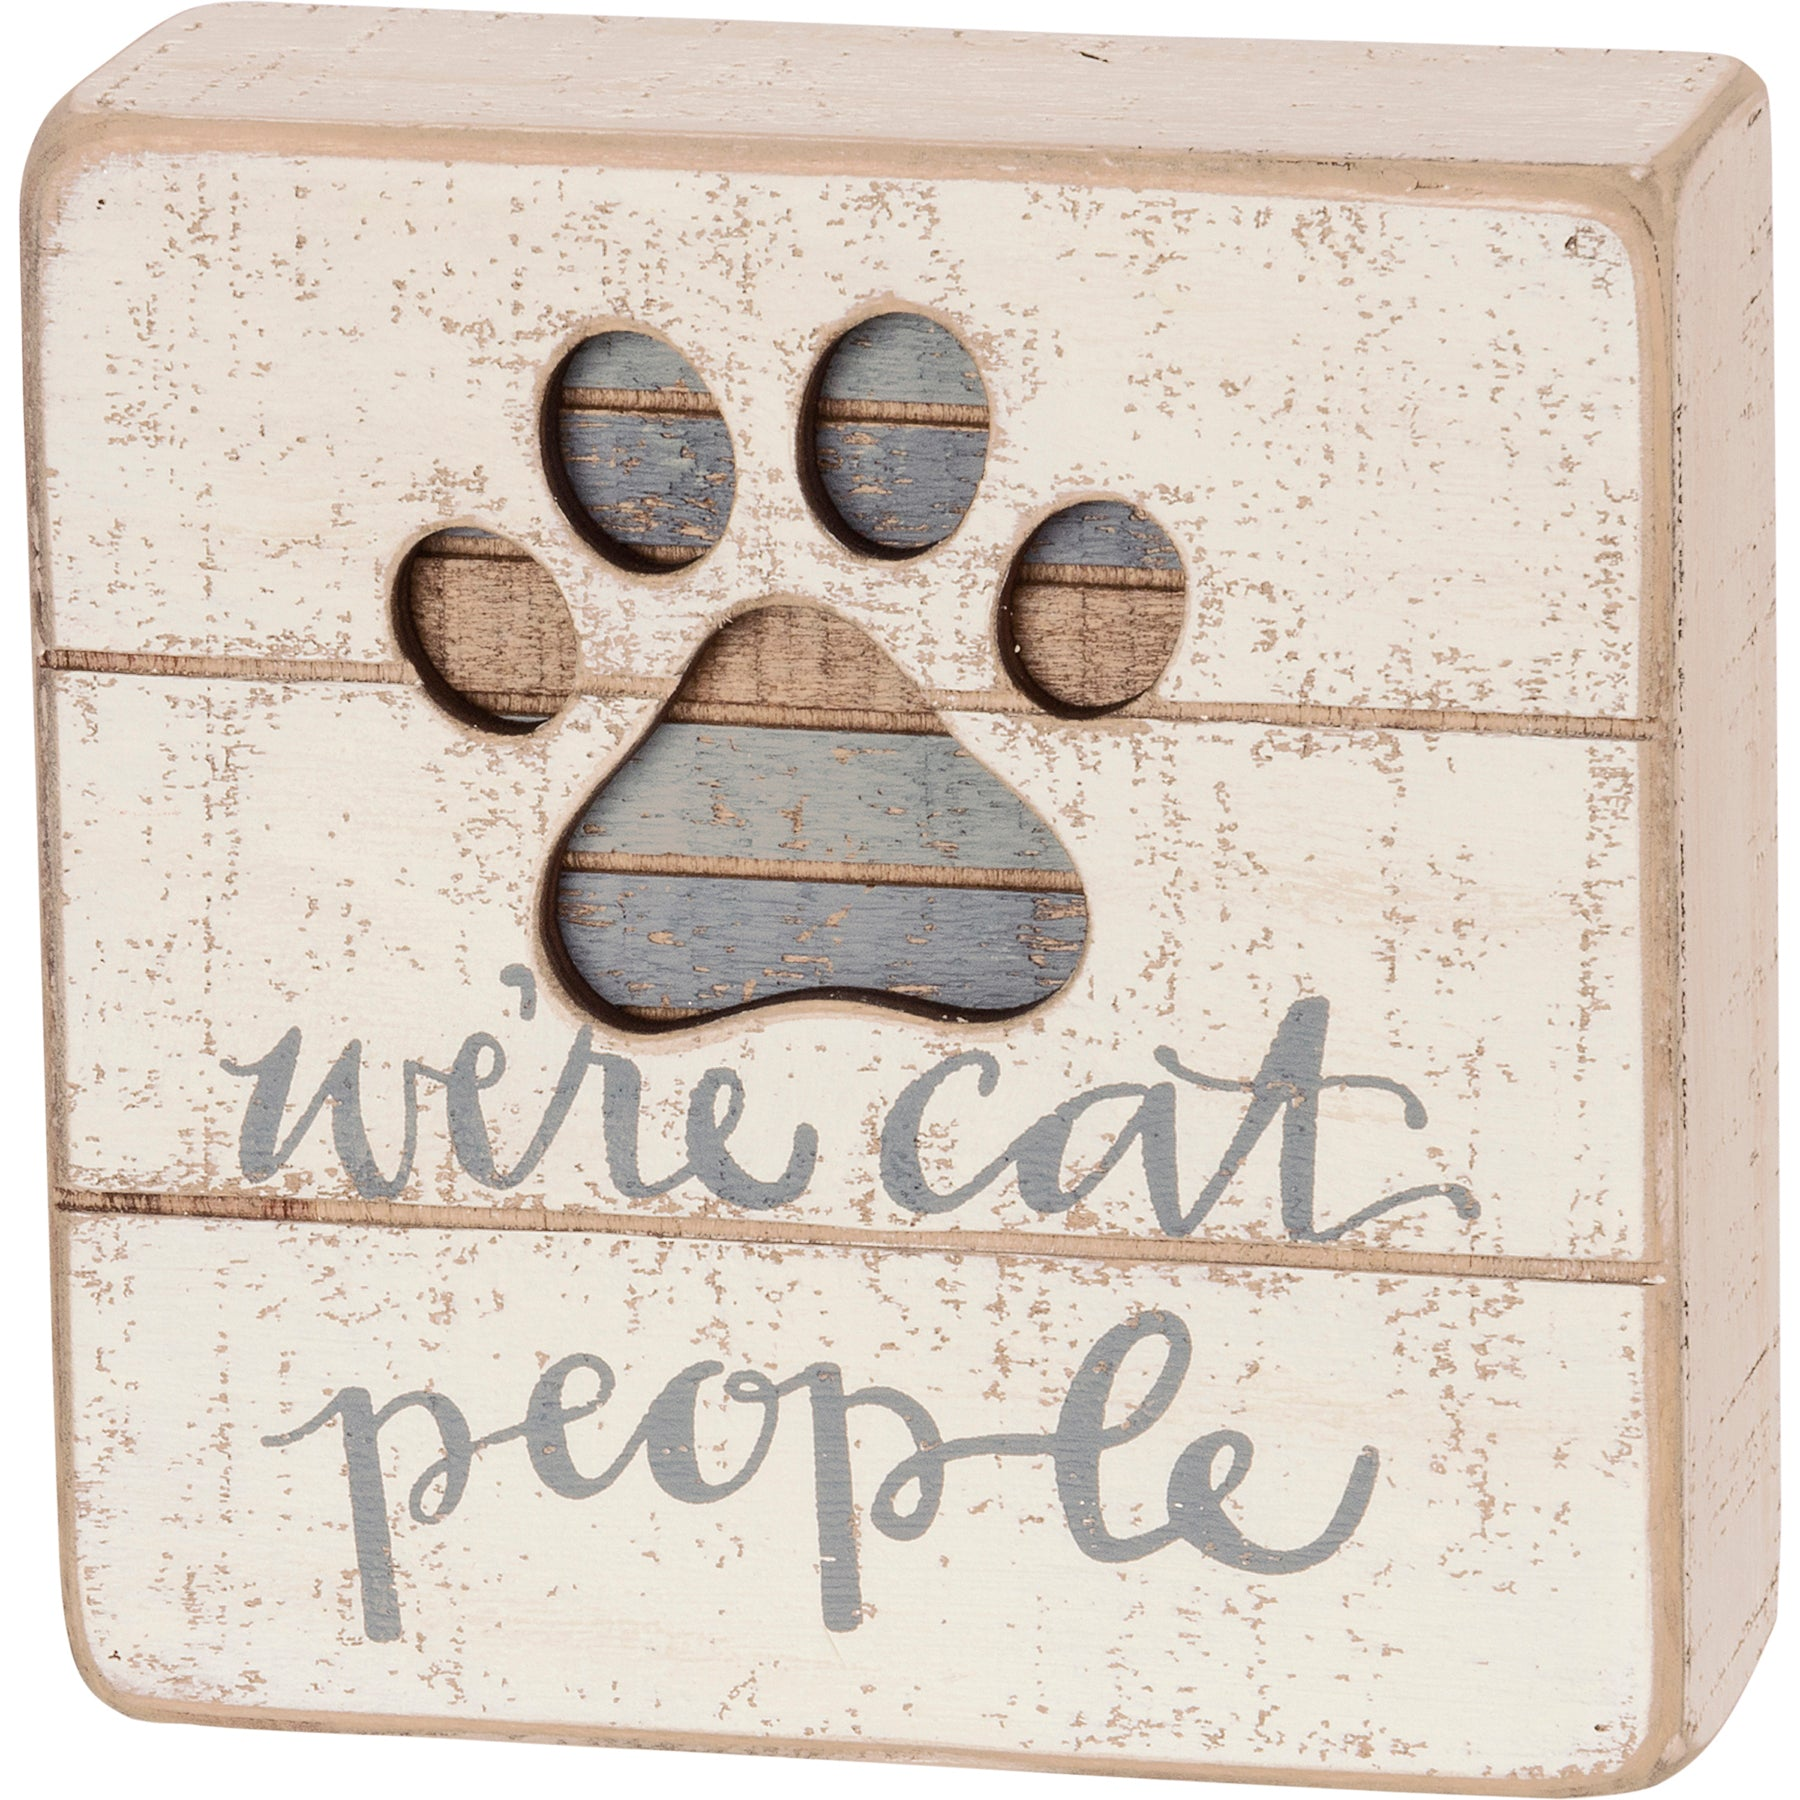 Primitives by Kathy - Slat Box Sign, We're Cat People